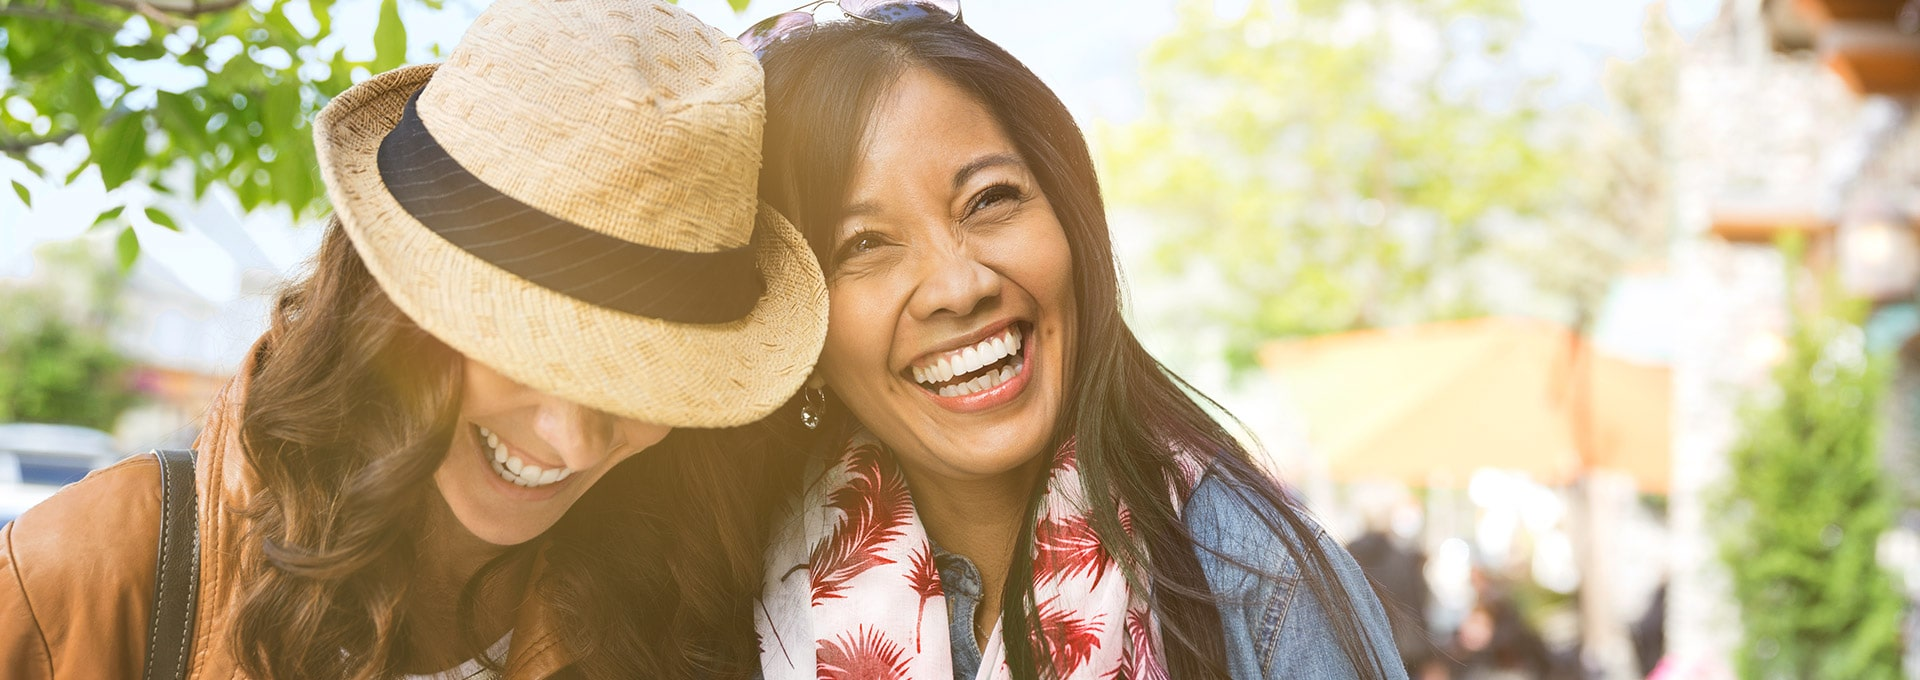 Women walking on the street wearing a hat and not having feedback from the hearing aids due to the Dynamic Feedback Canceller.